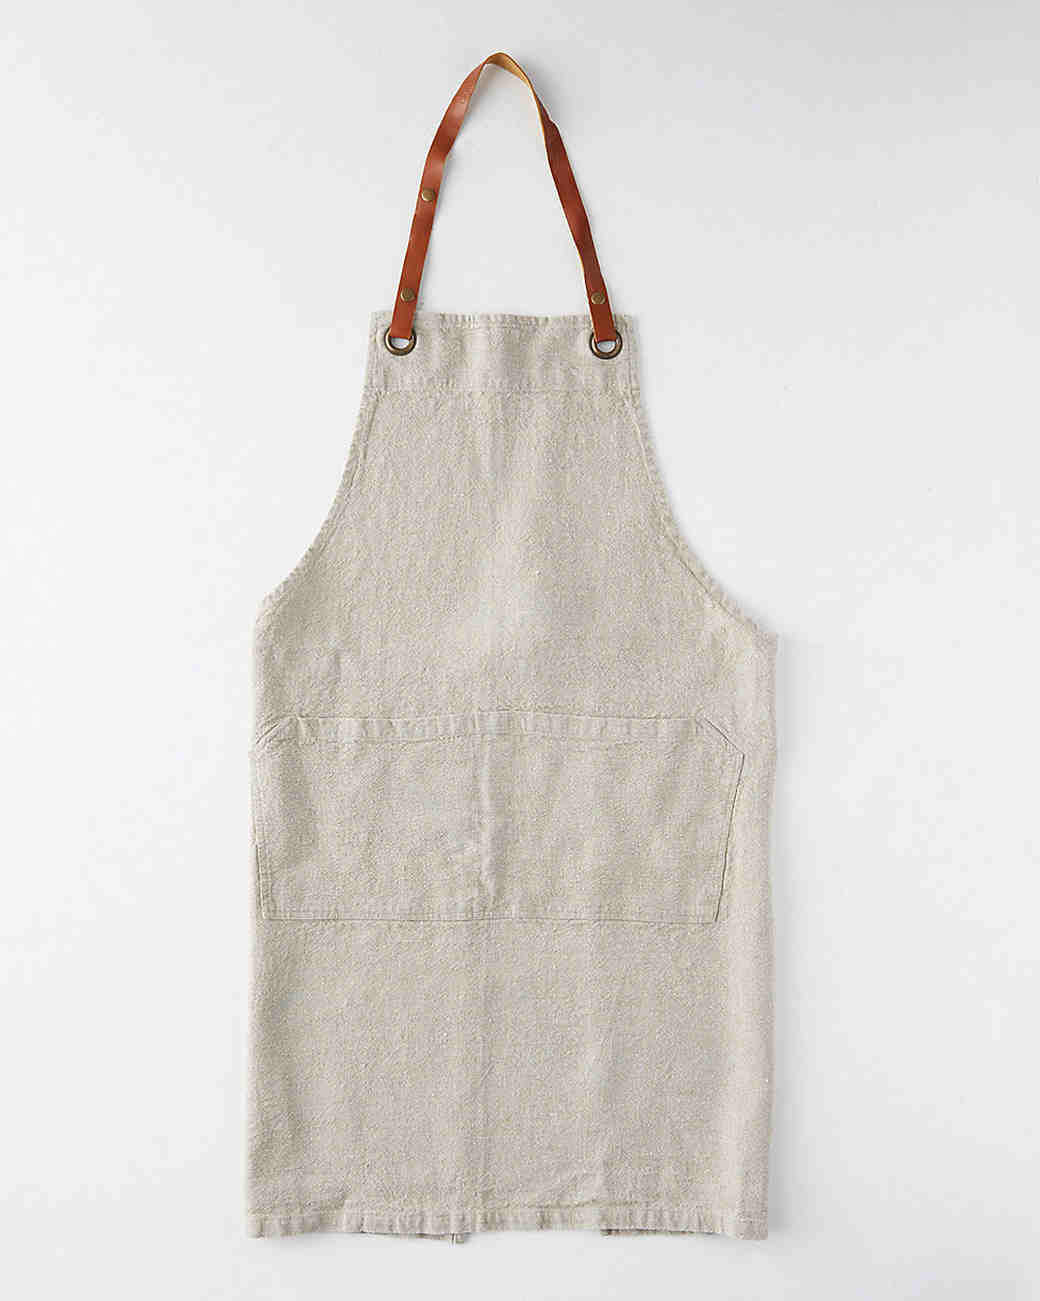 4th Wedding Anniversary Gift Ideas For Men: 4th Year Anniversary Gifts: Linen